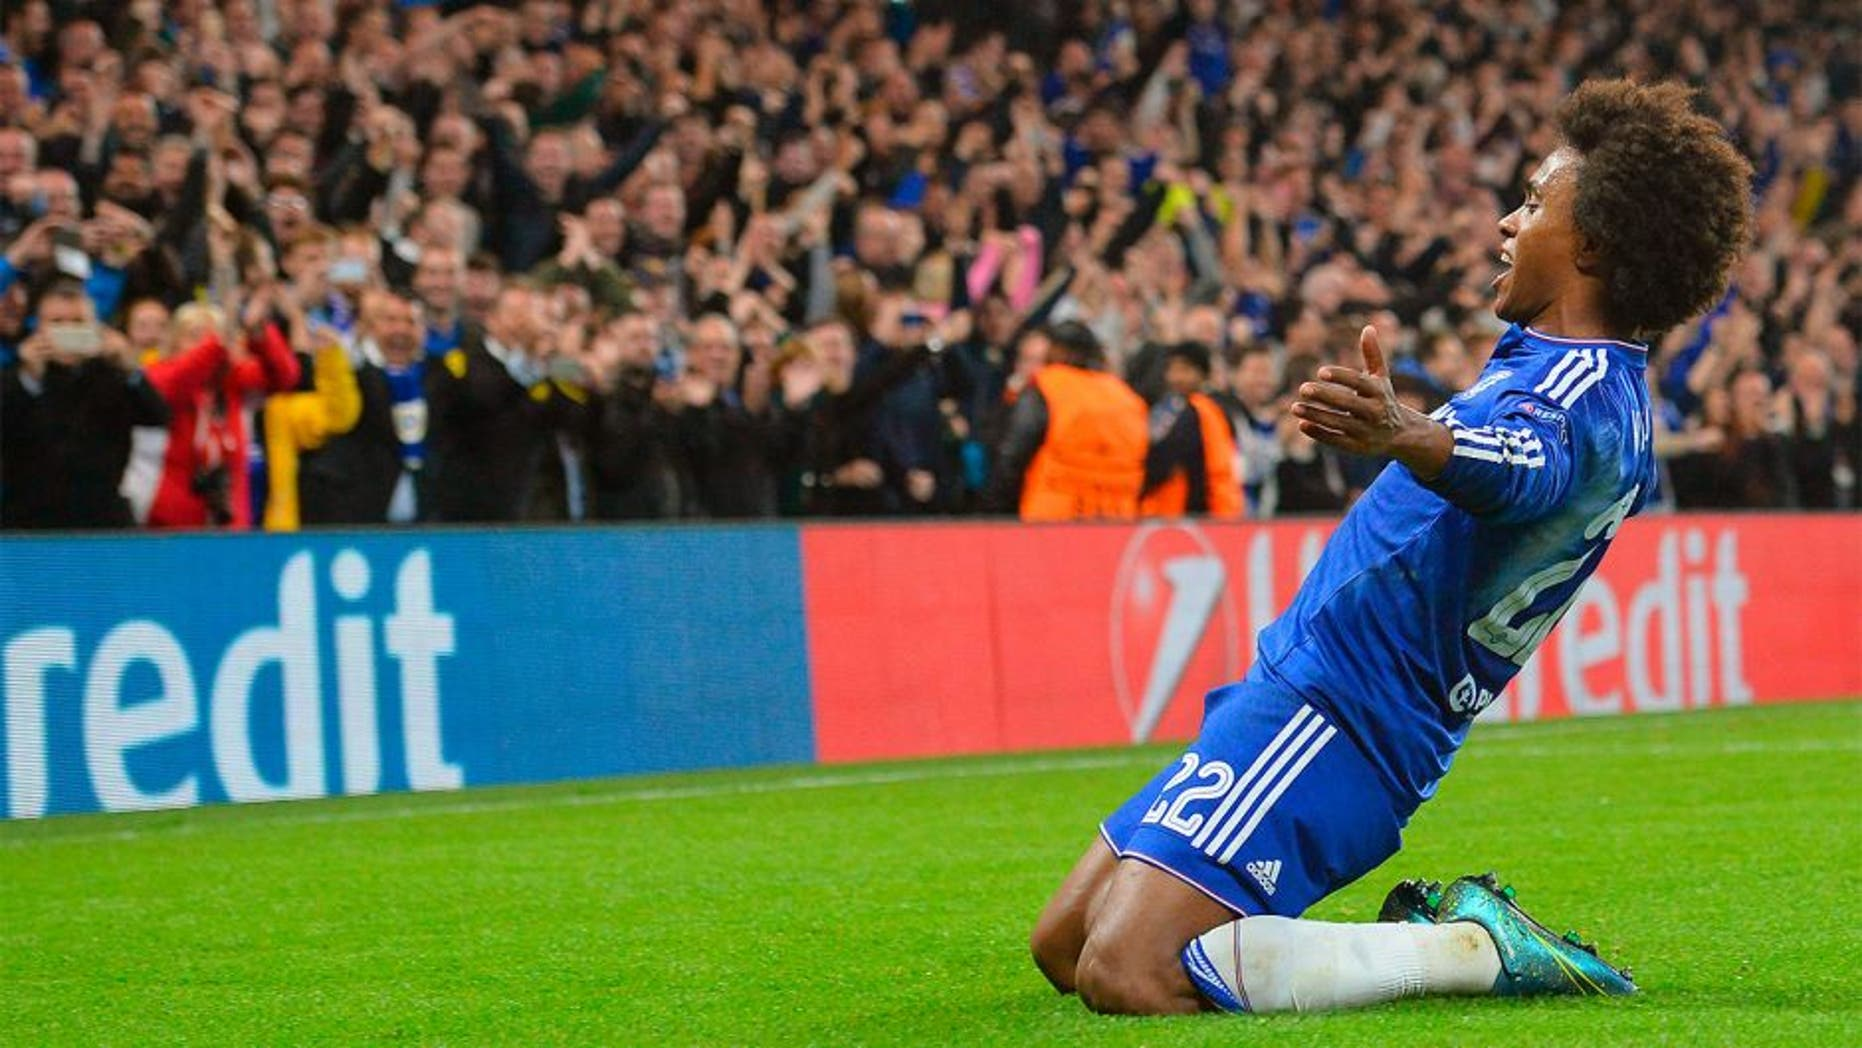 Chelsea's Brazilian midfielder Willian celebrates after scoring from a free kick during a UEFA Chamions league group stage football match between Chelsea and Dynamo Kiev at Stamford Bridge stadium in west London on November 4, 2015. AFP PHOTO / GLYN KIRK (Photo credit should read GLYN KIRK/AFP/Getty Images)